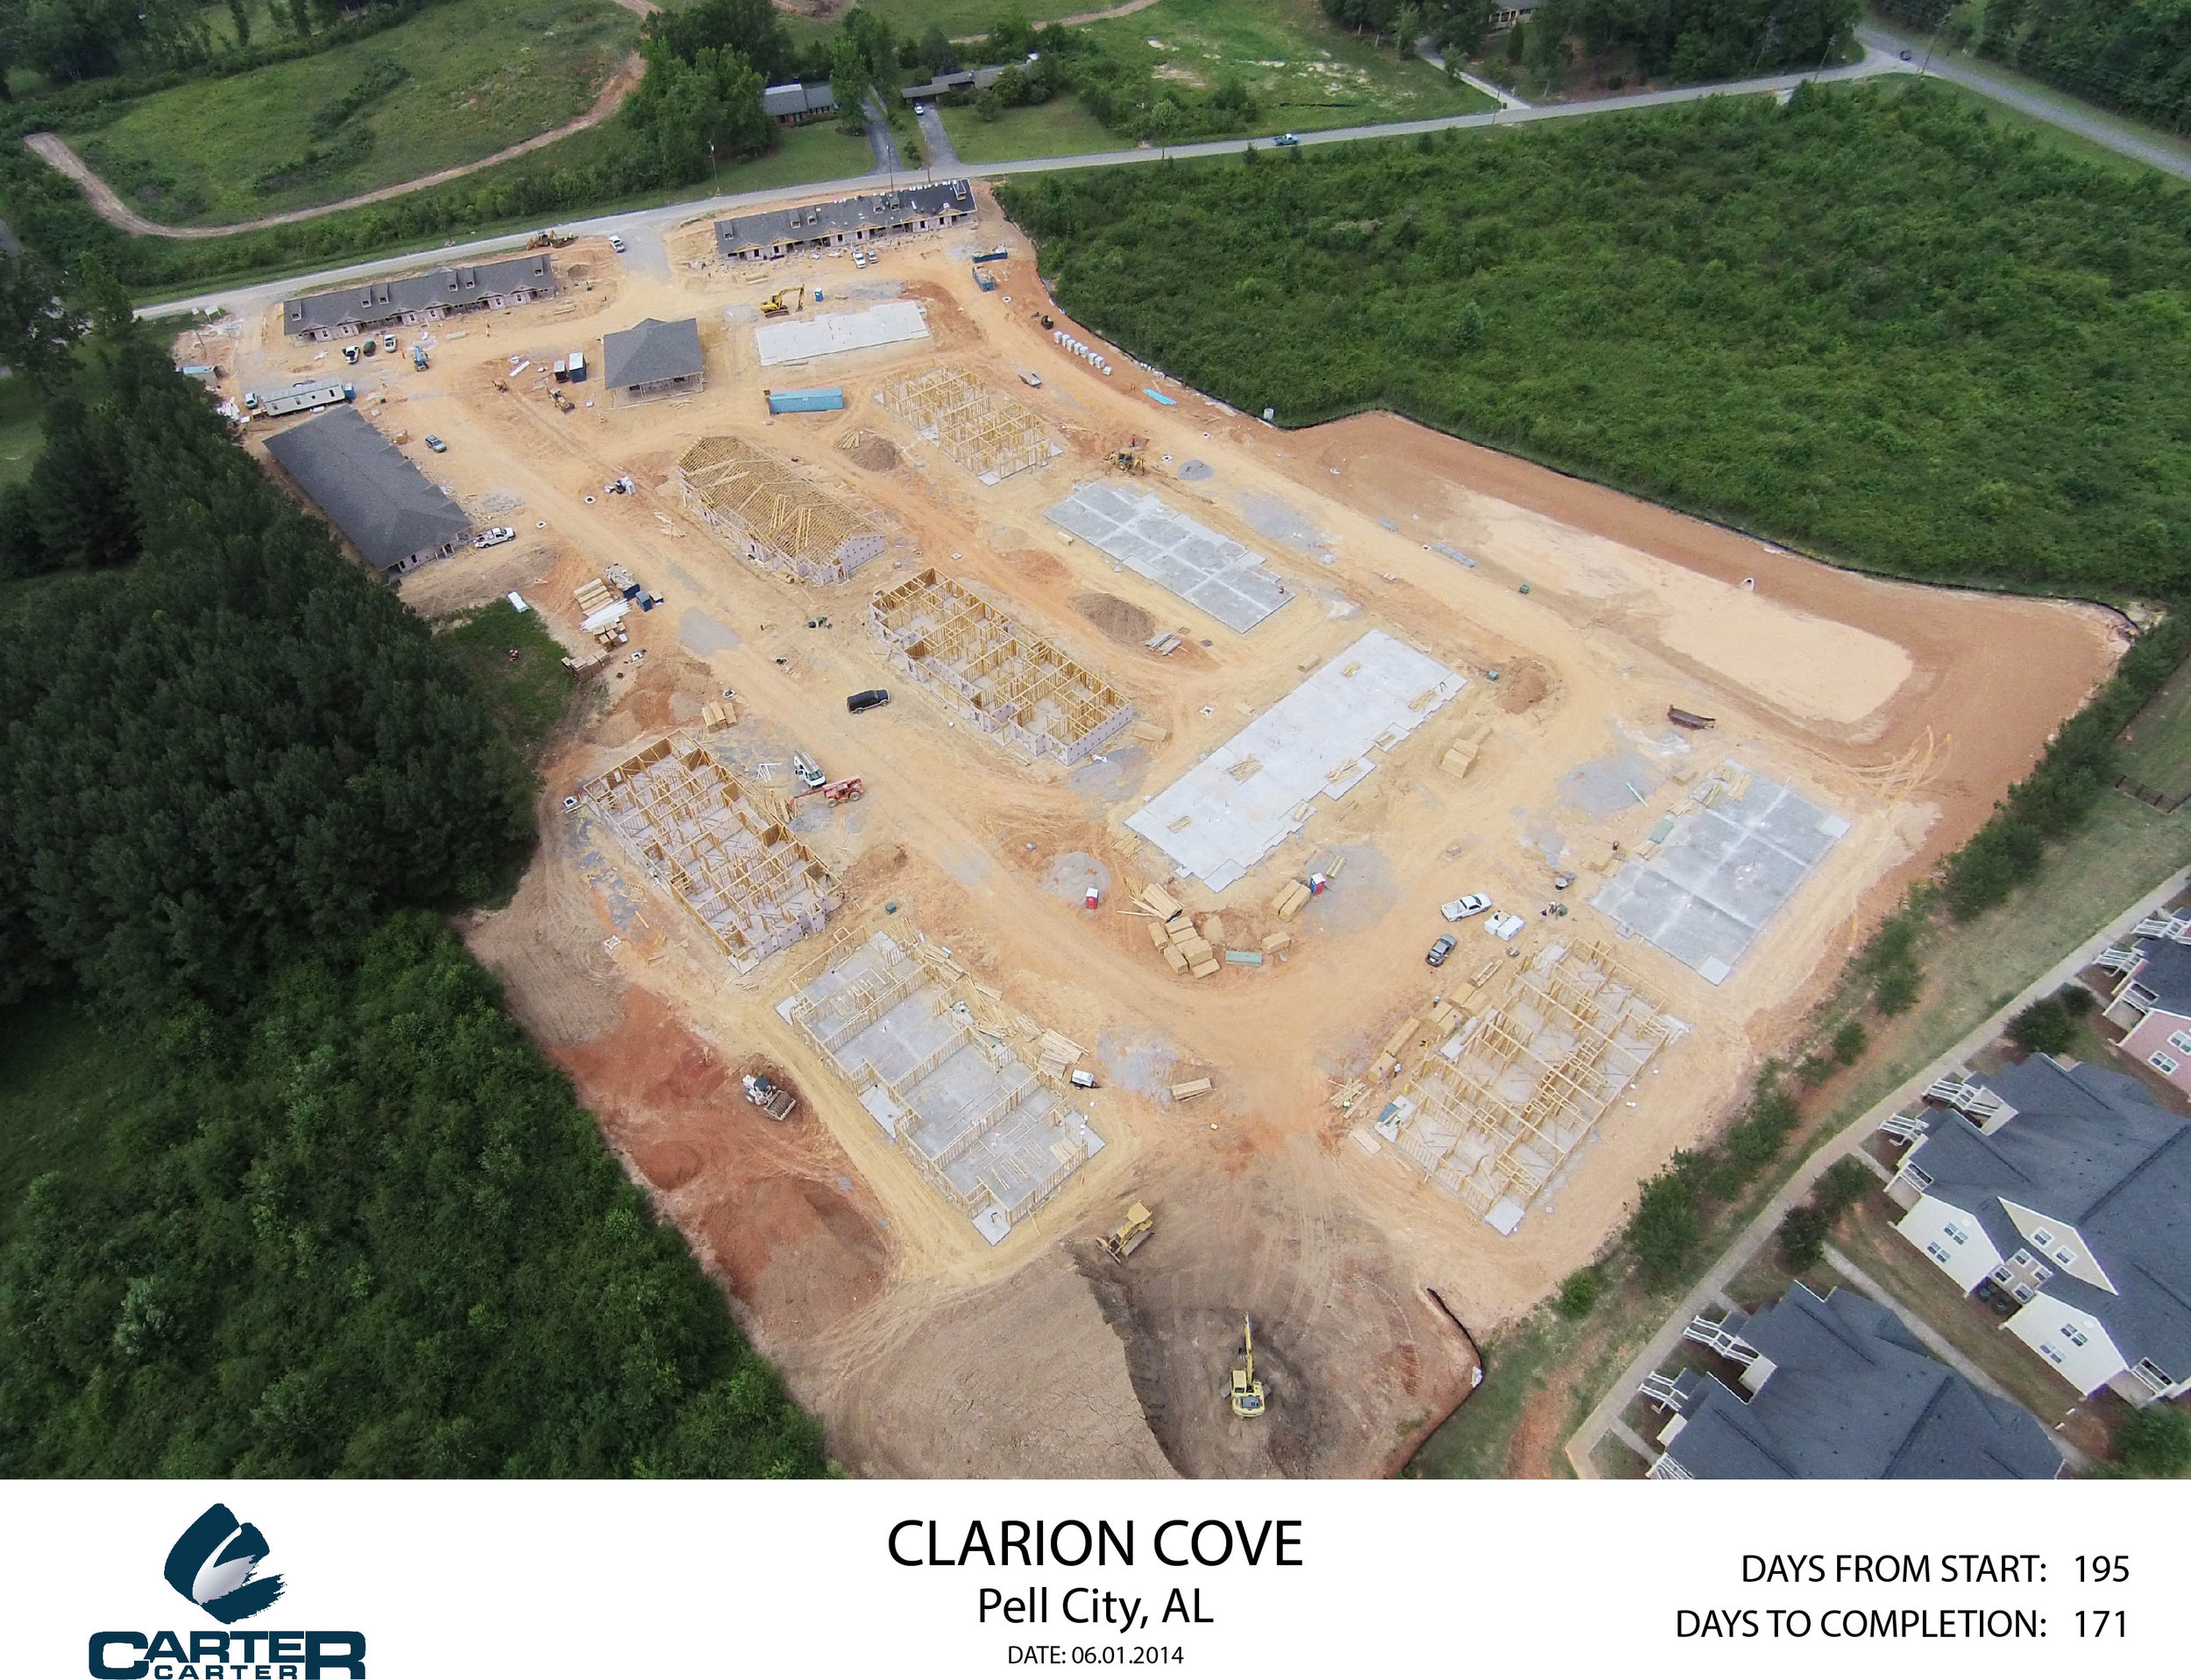 Clarion Cove 140601-3.jpg